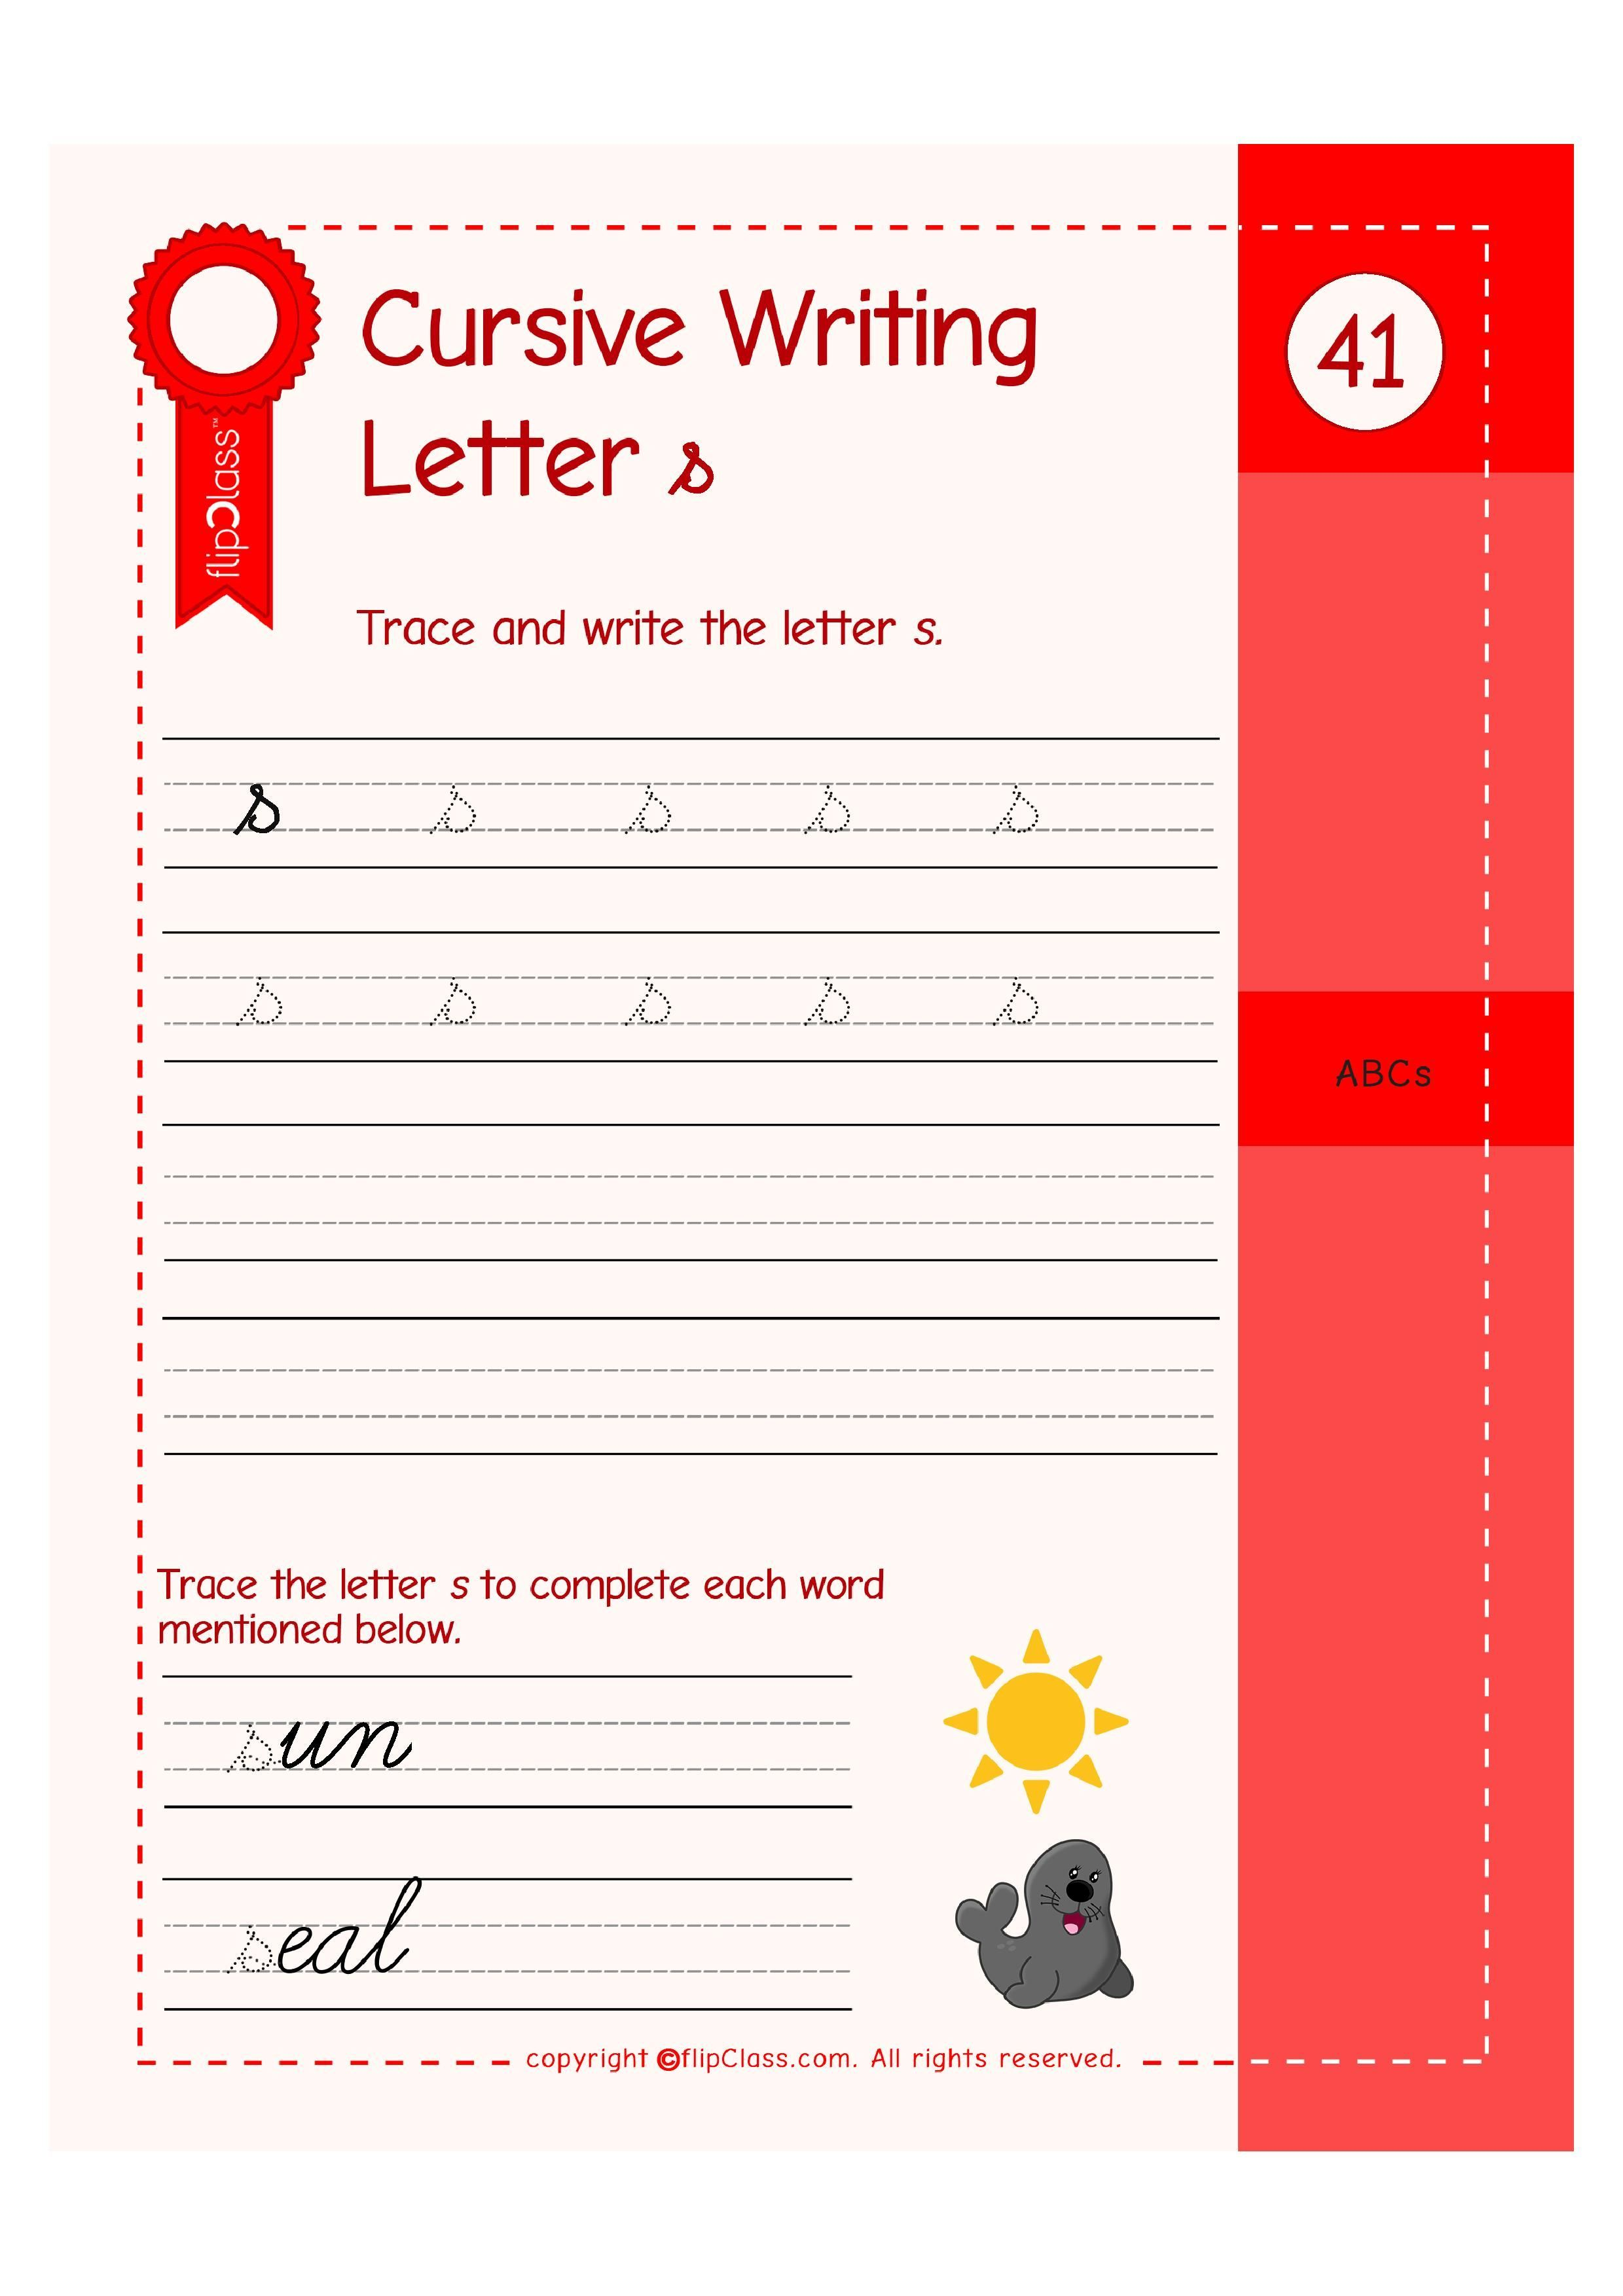 Ukg Worksheets Flipclass Genius Kids Workbooks These Colourful And Illustrative Worksheets Help Your Child Learn Learn To Write Cursive Learning Cursive Math